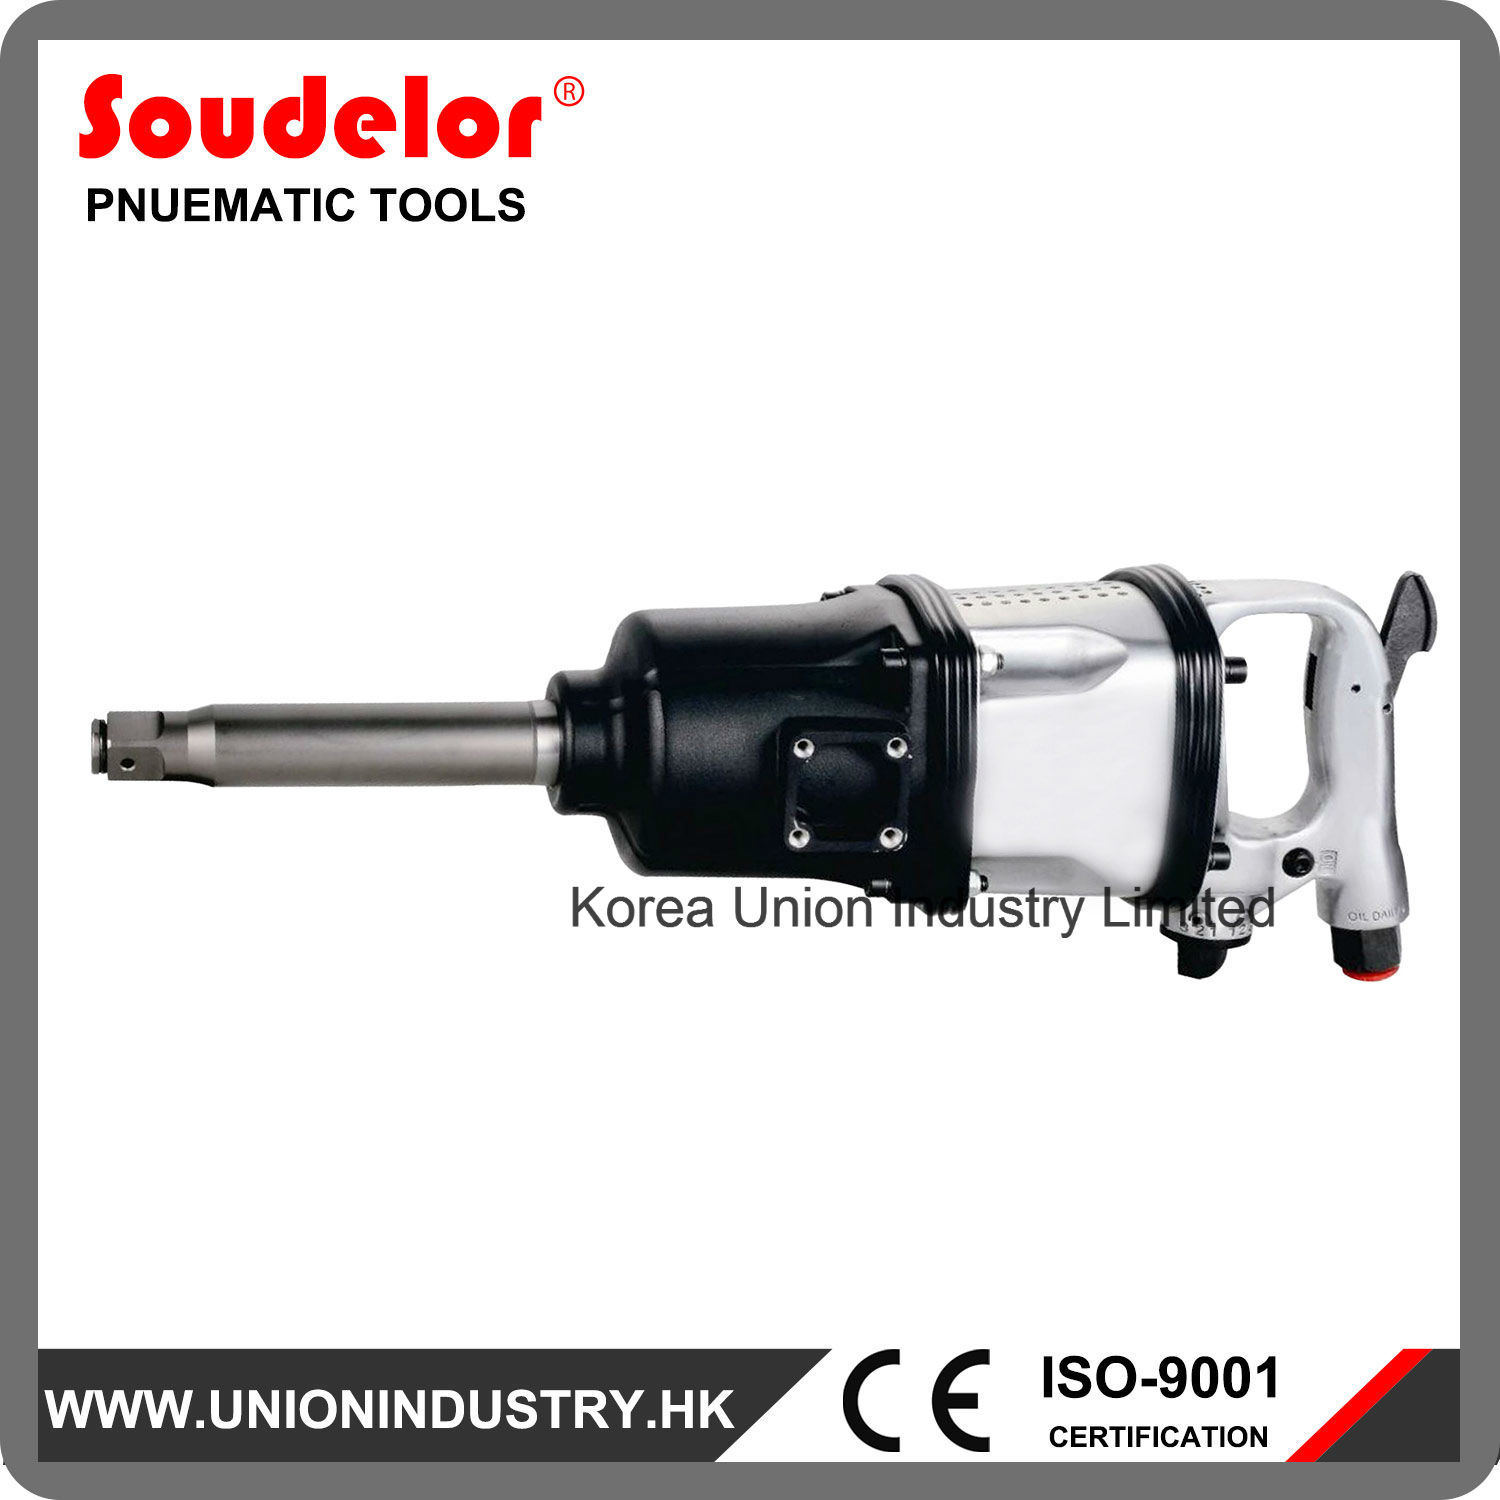 [Hot Item] 1 Inch Pneumatic Tool Industrial Quality Snap on Impact Wrench  Ui-1208